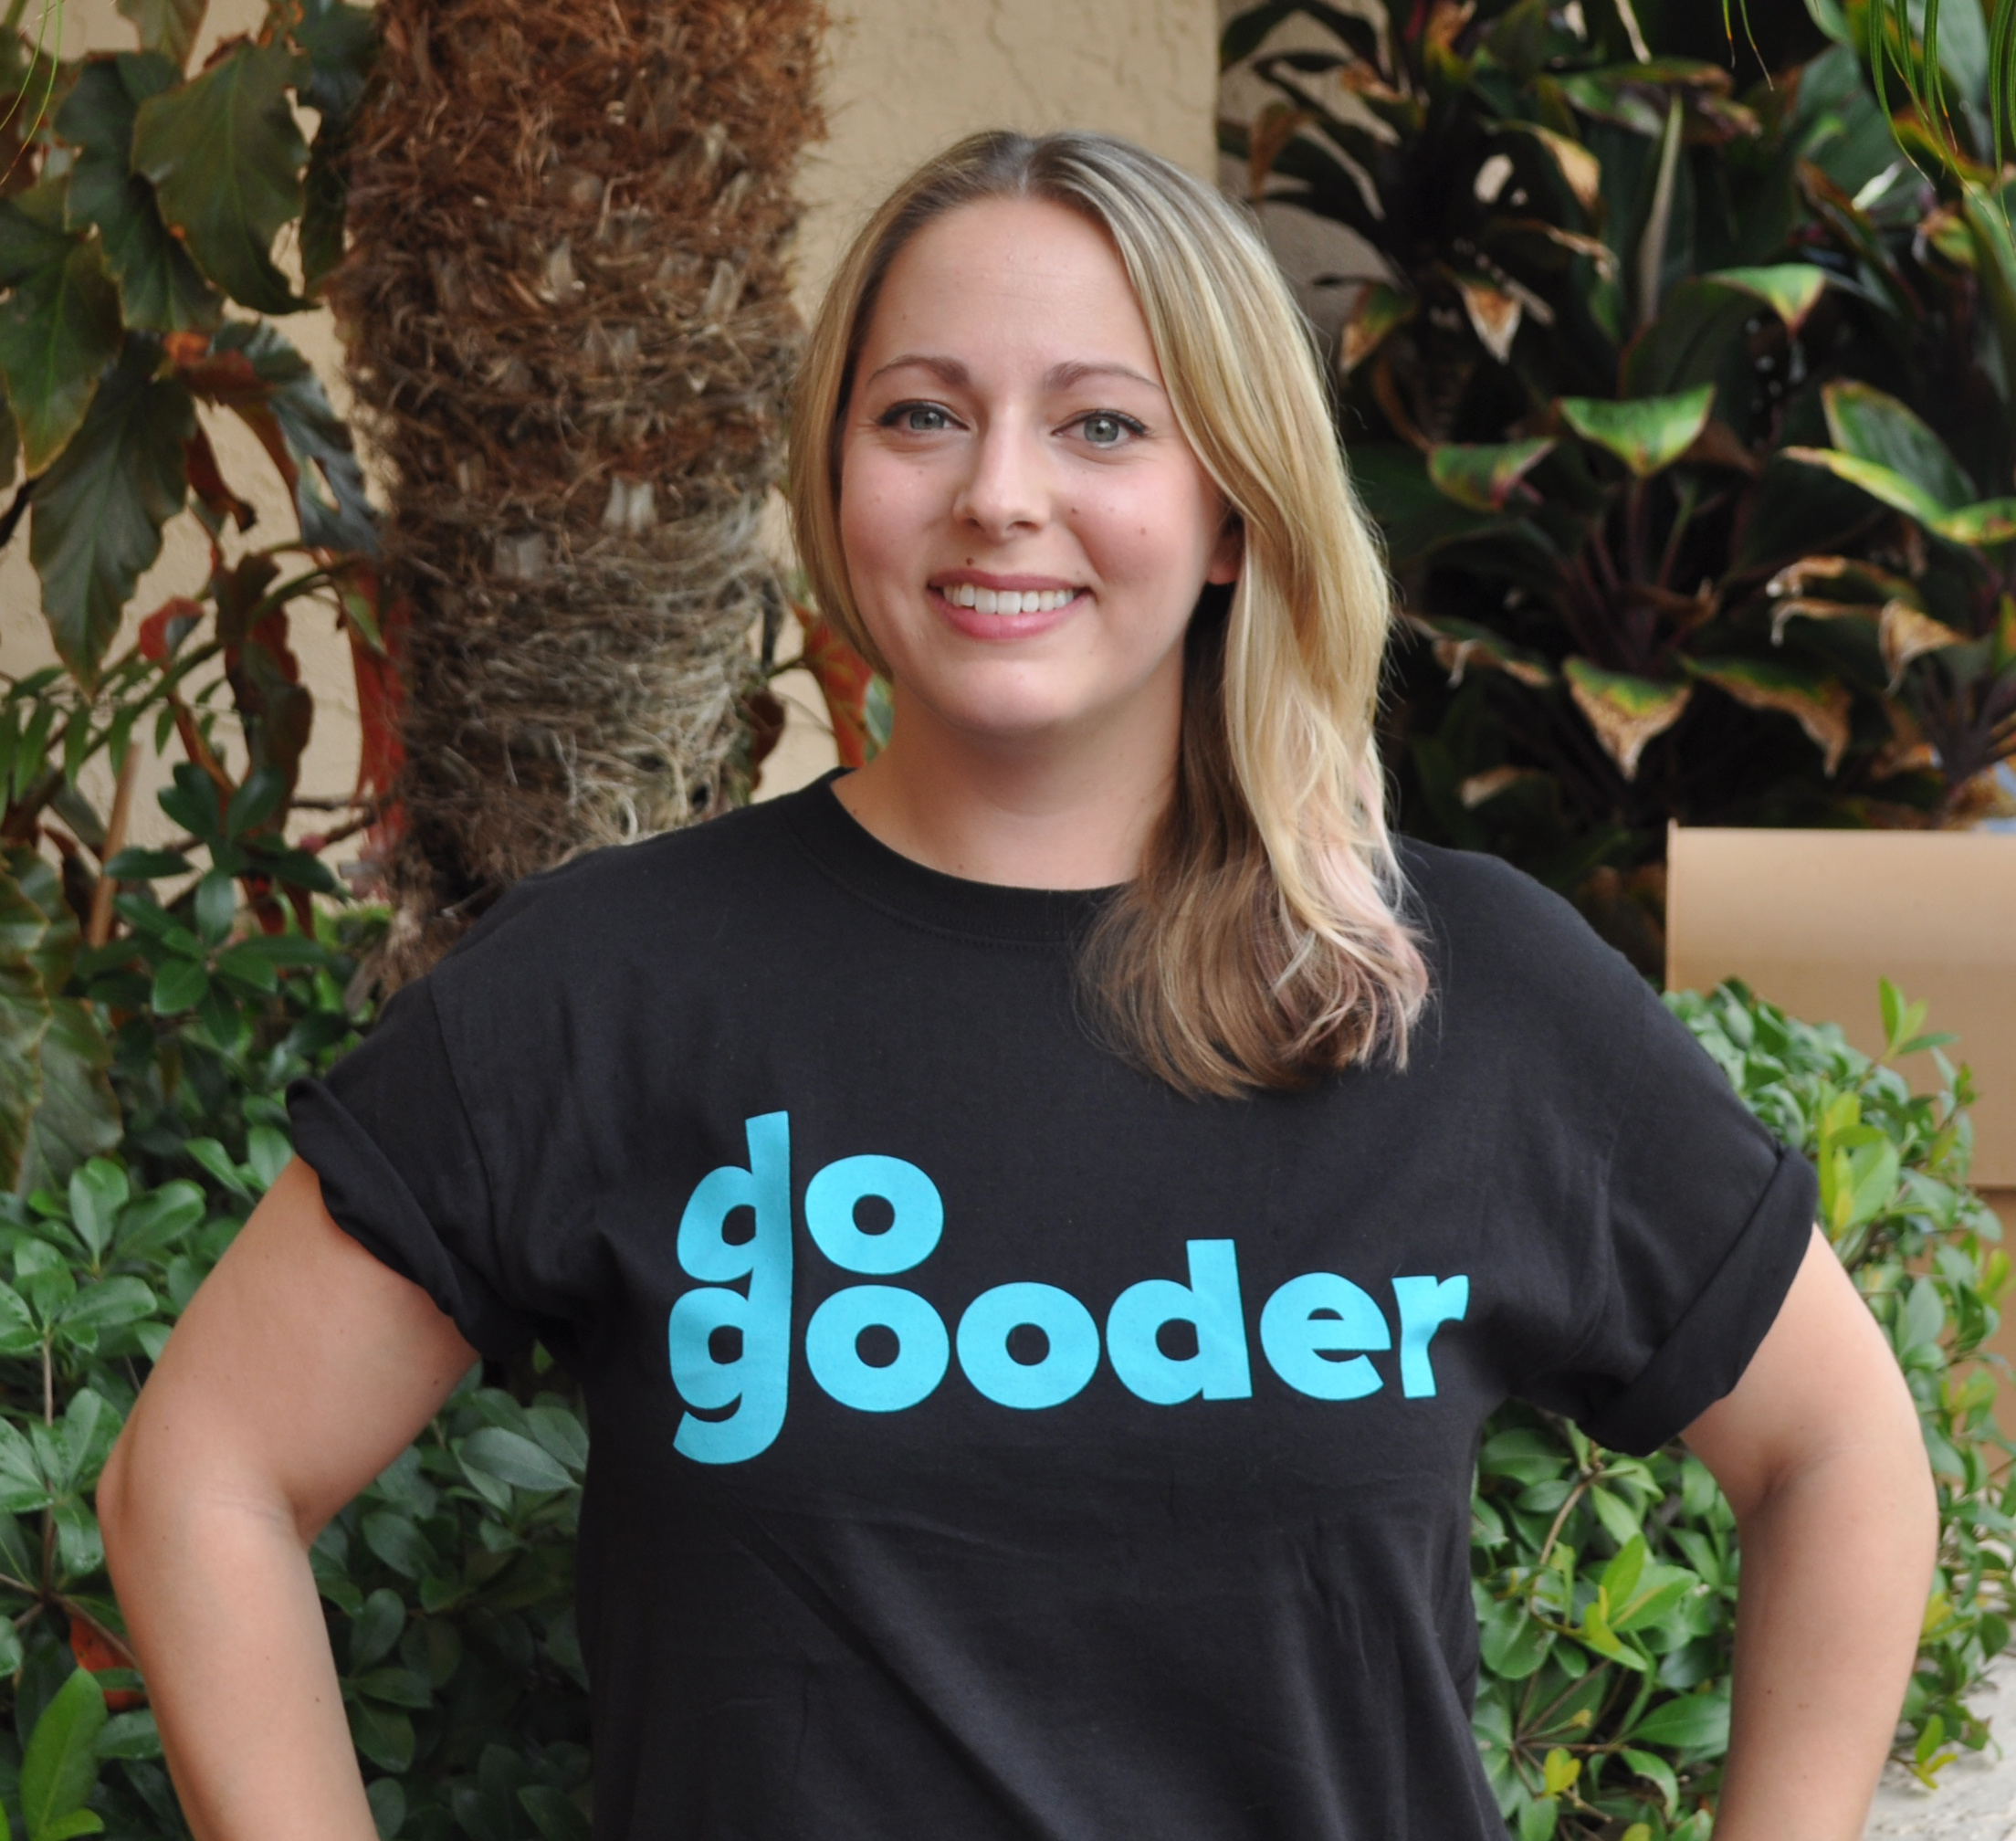 CEO and founding Do-Gooder, Katrina Crocker modeling the black Do-Gooder t-shirt